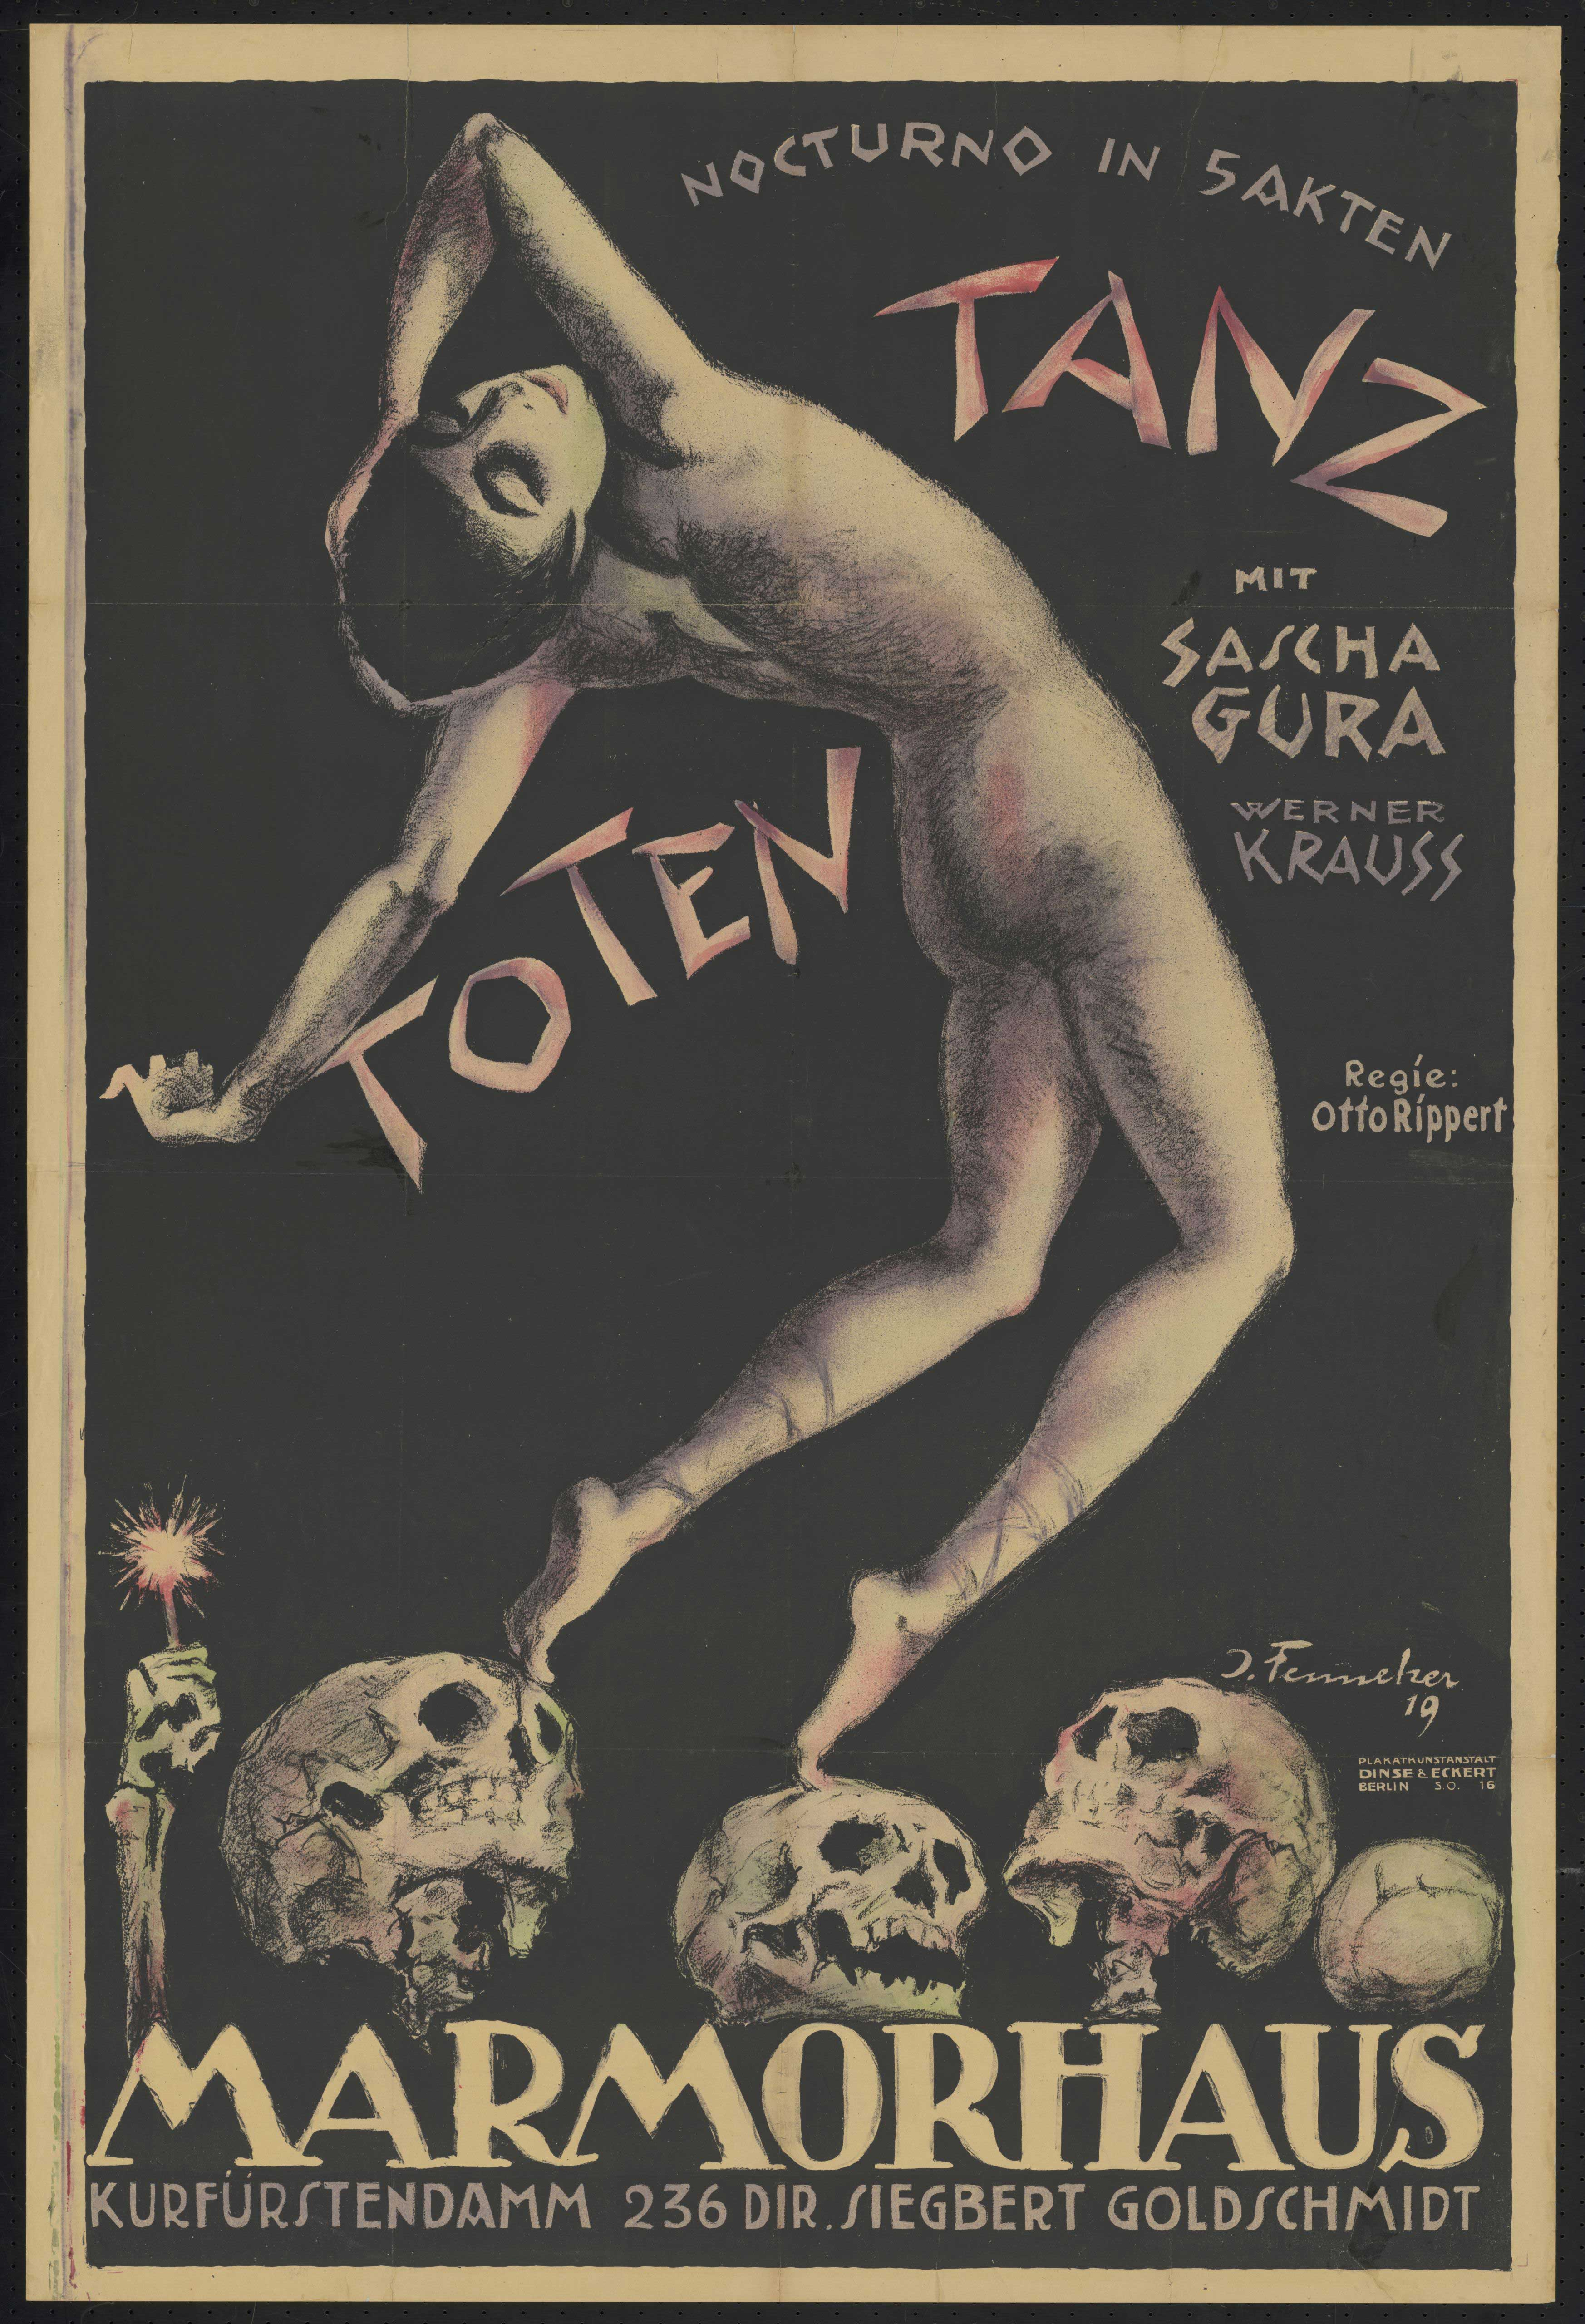 Film poster by Josef Fenneker: Totentanz, Germany 1919, directed by Otto Rippert